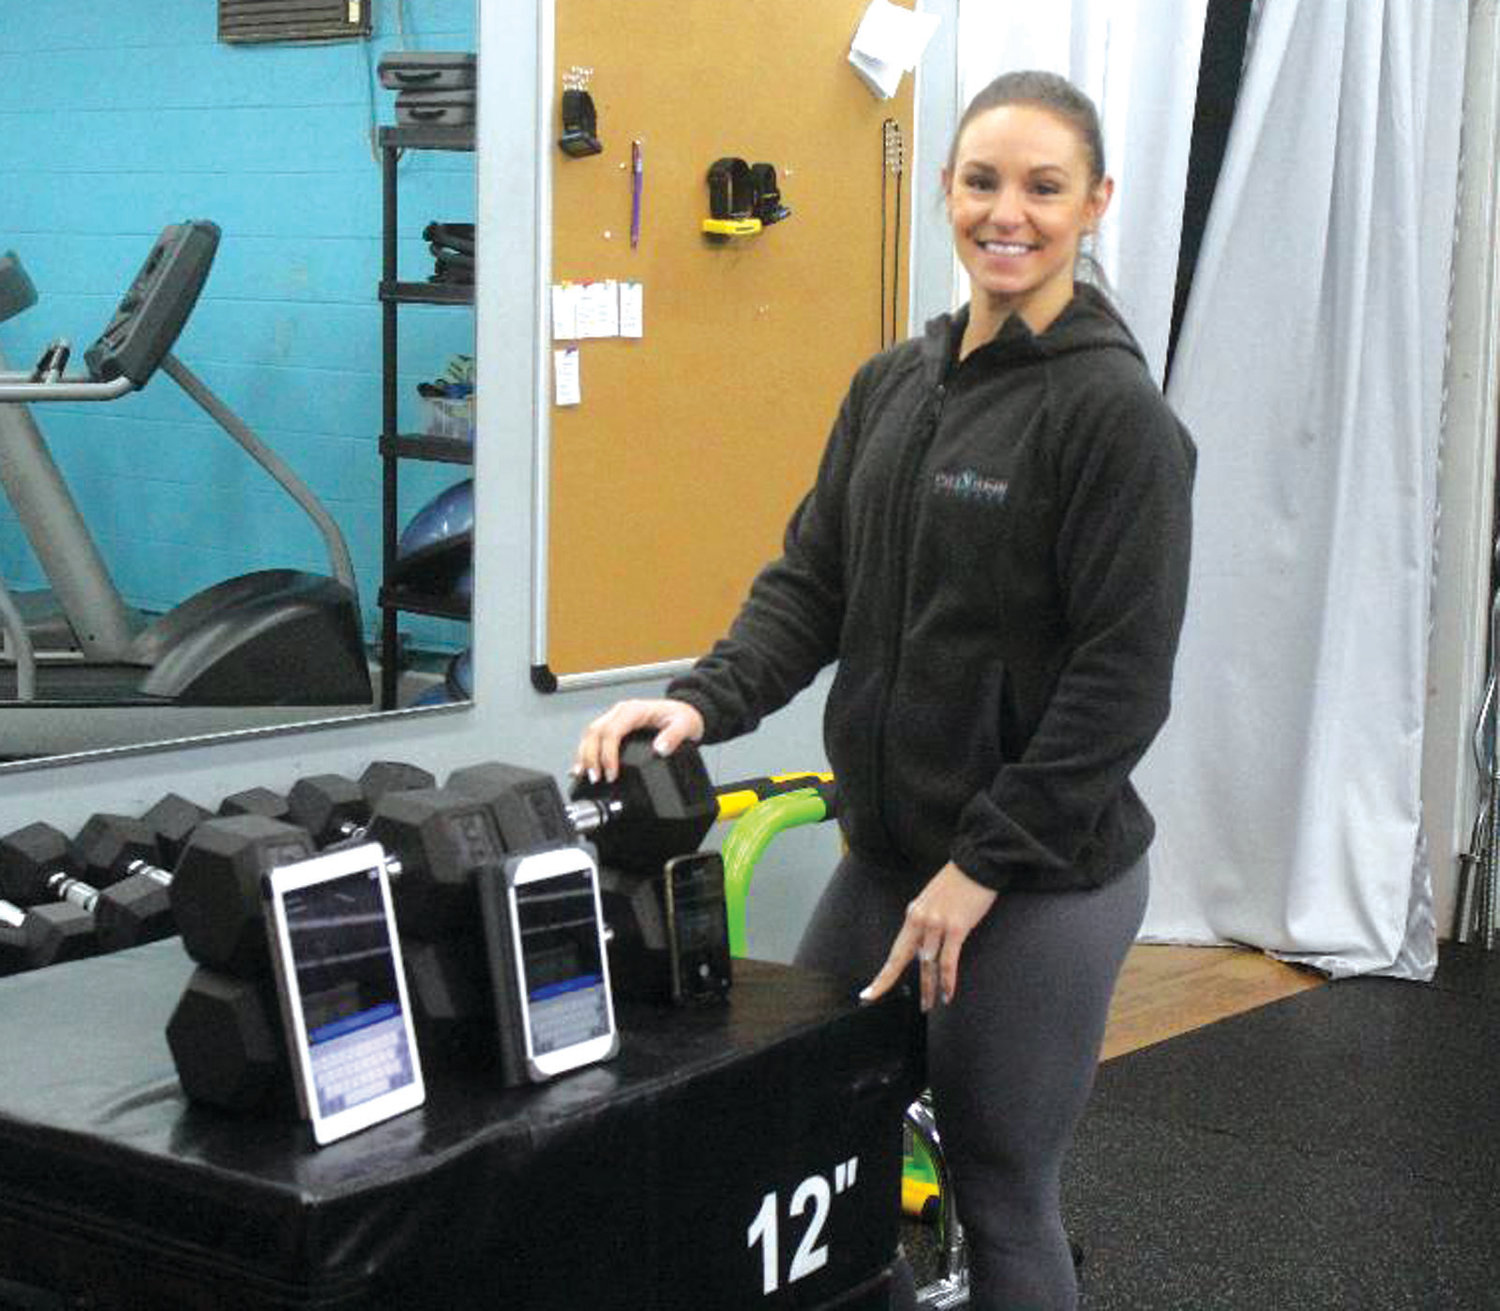 VIRTUAL WORKOUT: Stacie Venagro, owner of Stacie Venagro Fitness in Cranston, shows off the setup she has been using to host online workouts for her clients during the COVID-19 pandemic. (Photos by Alex Sponseller)